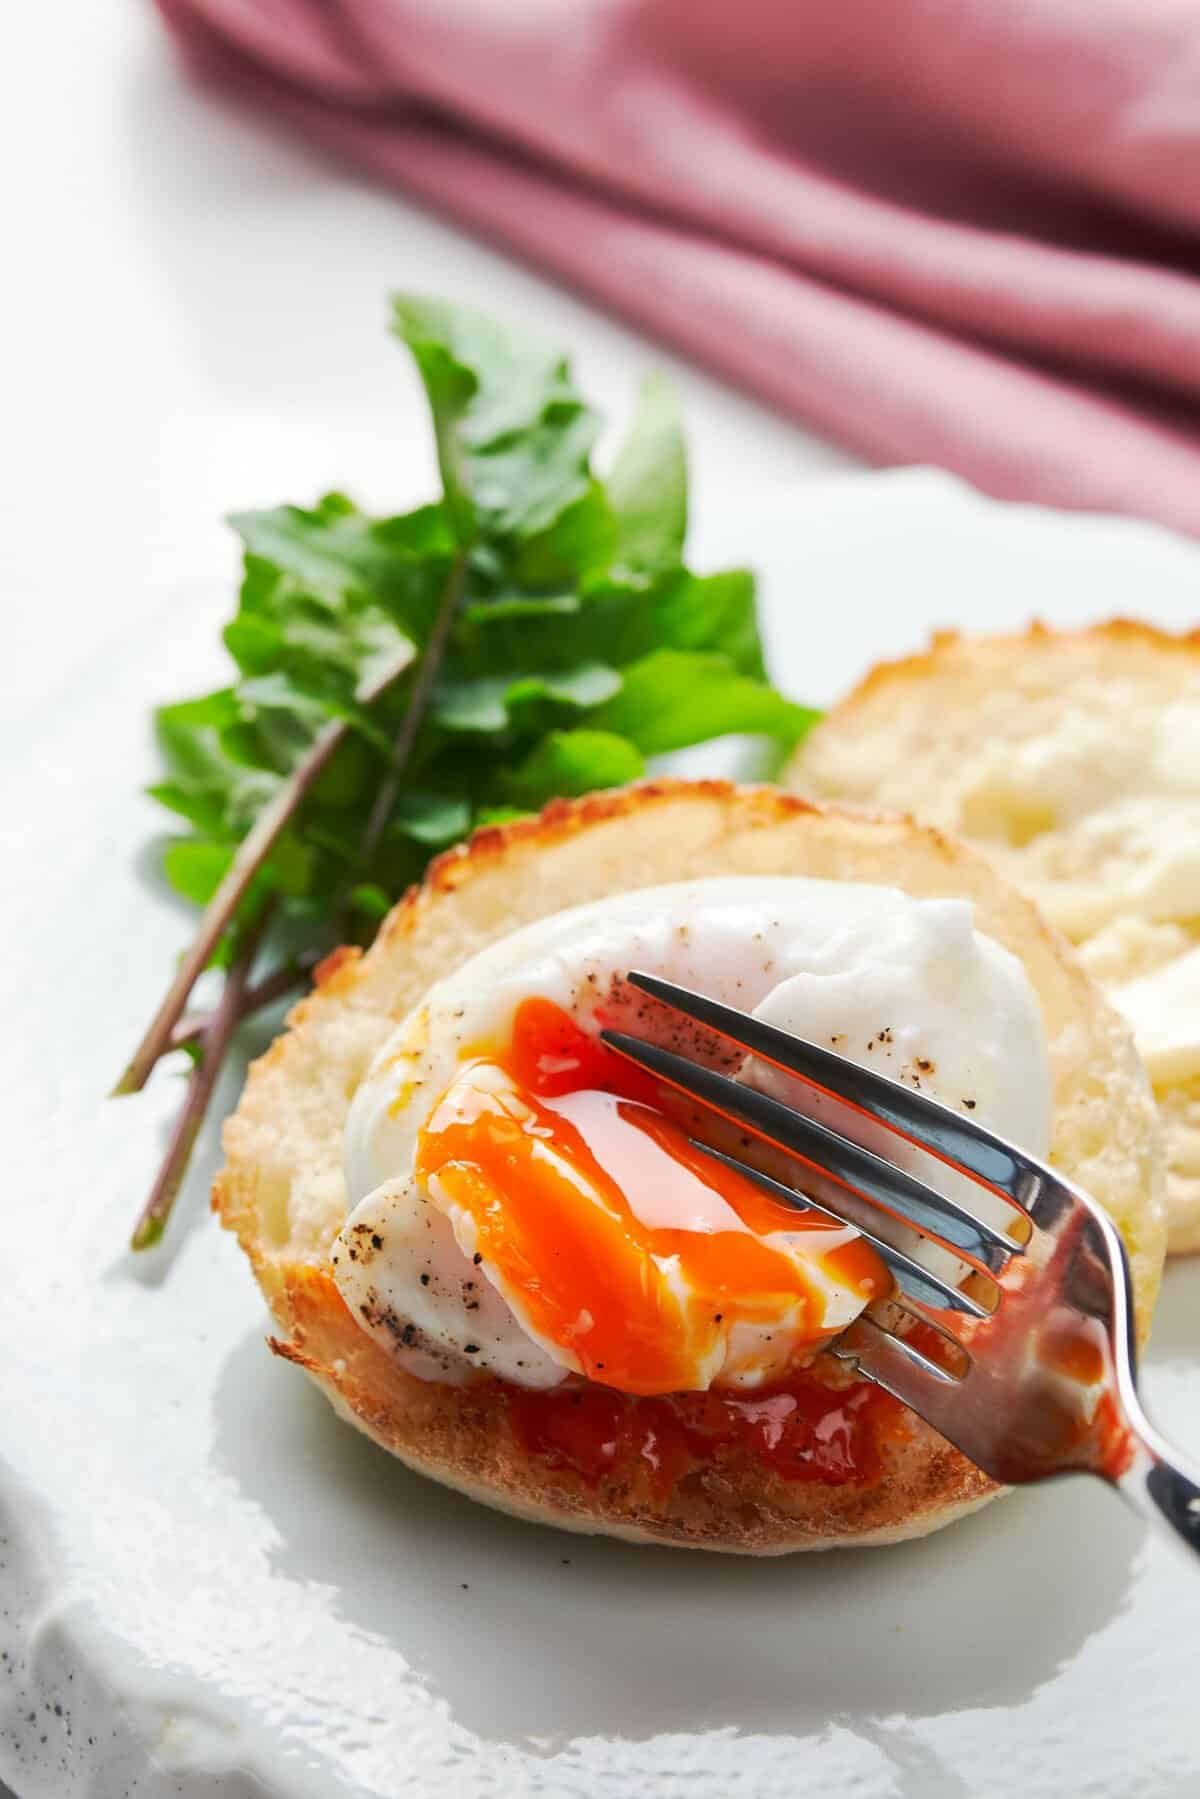 In this poached egg recipe, I cover the three most common mistakes people make when poaching eggs, and how to avoid them to get perfect poached eggs every time.